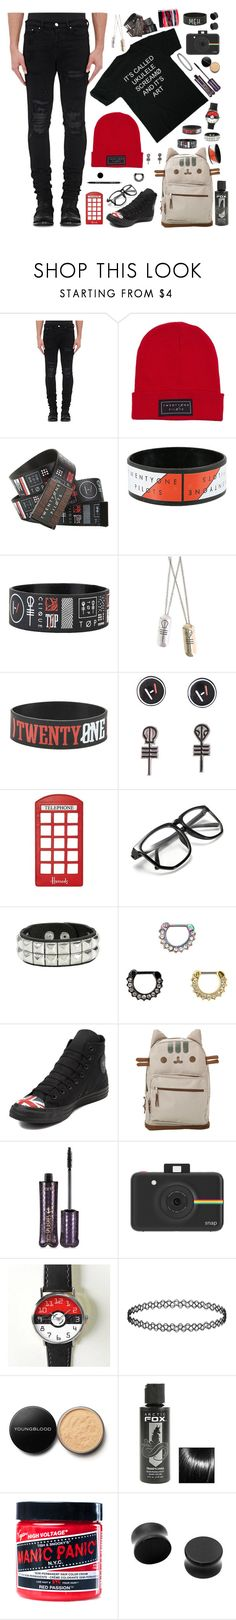 """""""Going to a Twenty One Pilots concert !"""" by xx-prince-gumball-xx ❤ liked on Polyvore featuring AMIRI, Harrods, Arbonne, Converse, Pusheen, tarte, Polaroid, Youngblood, Manic Panic NYC and PrinceGumballsCloset"""